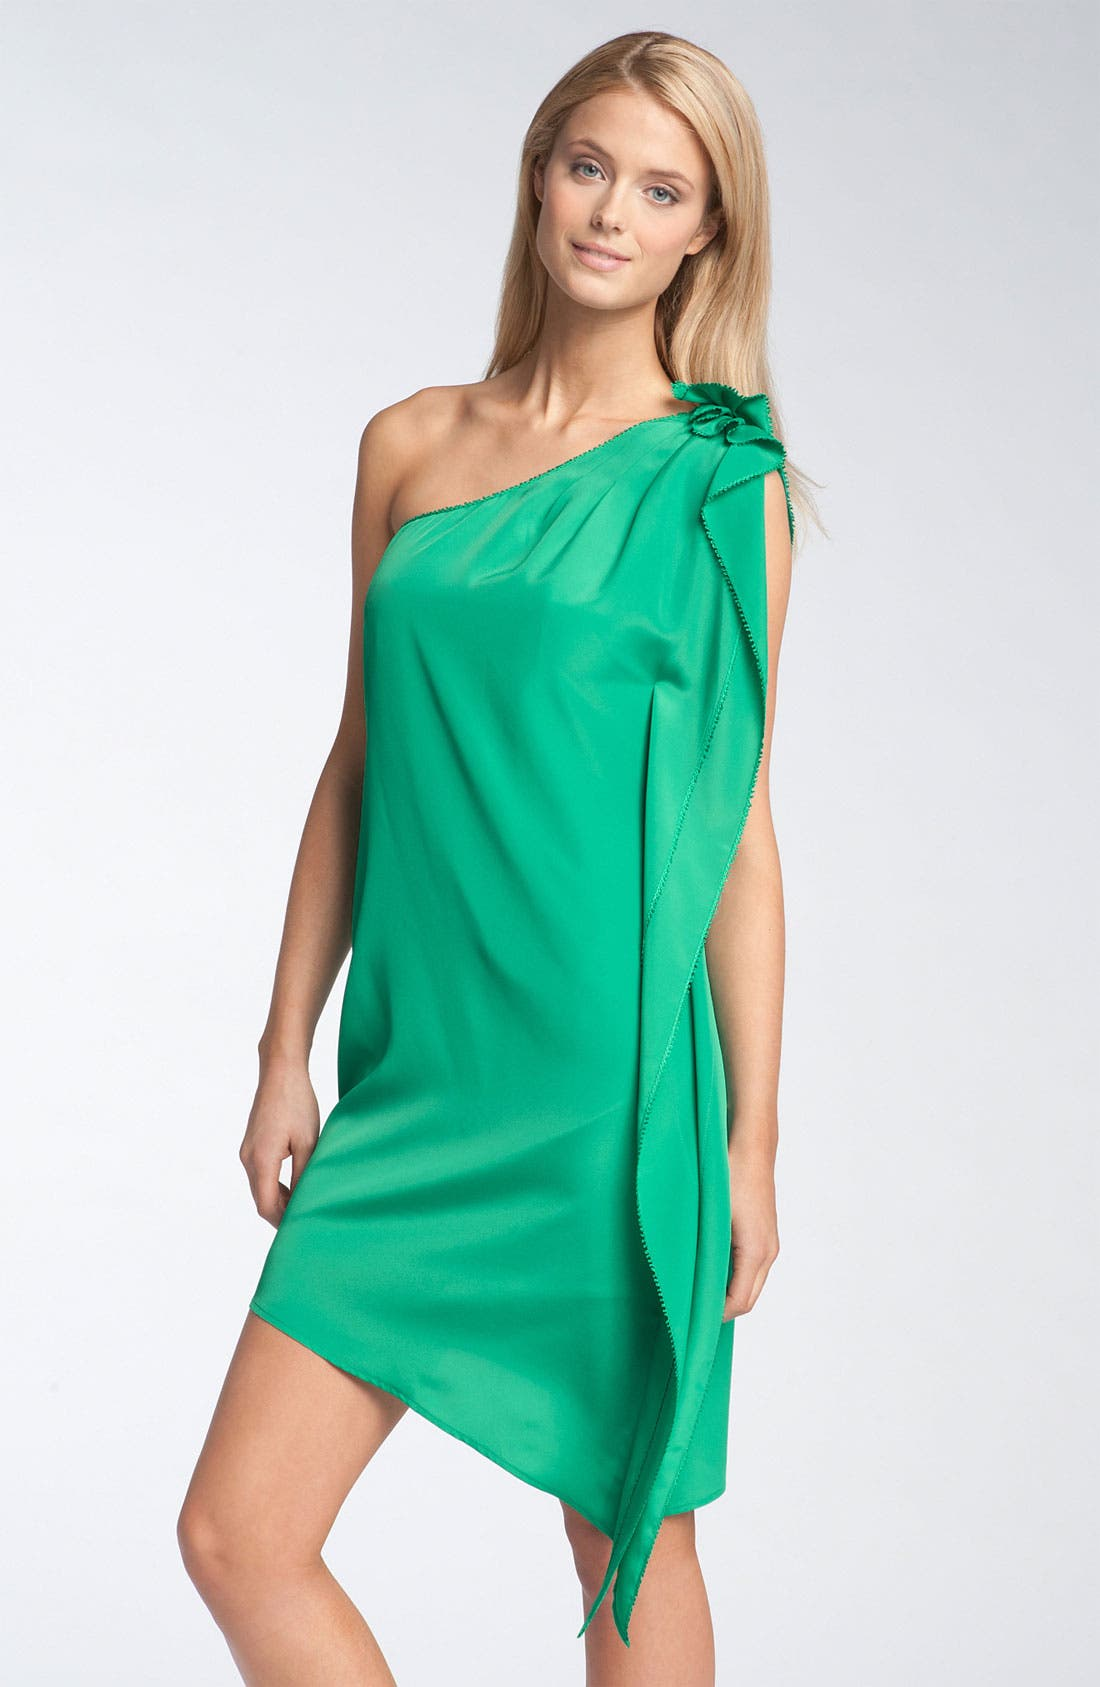 Main Image - Jessica Simpson One Shoulder Ruffle Dress